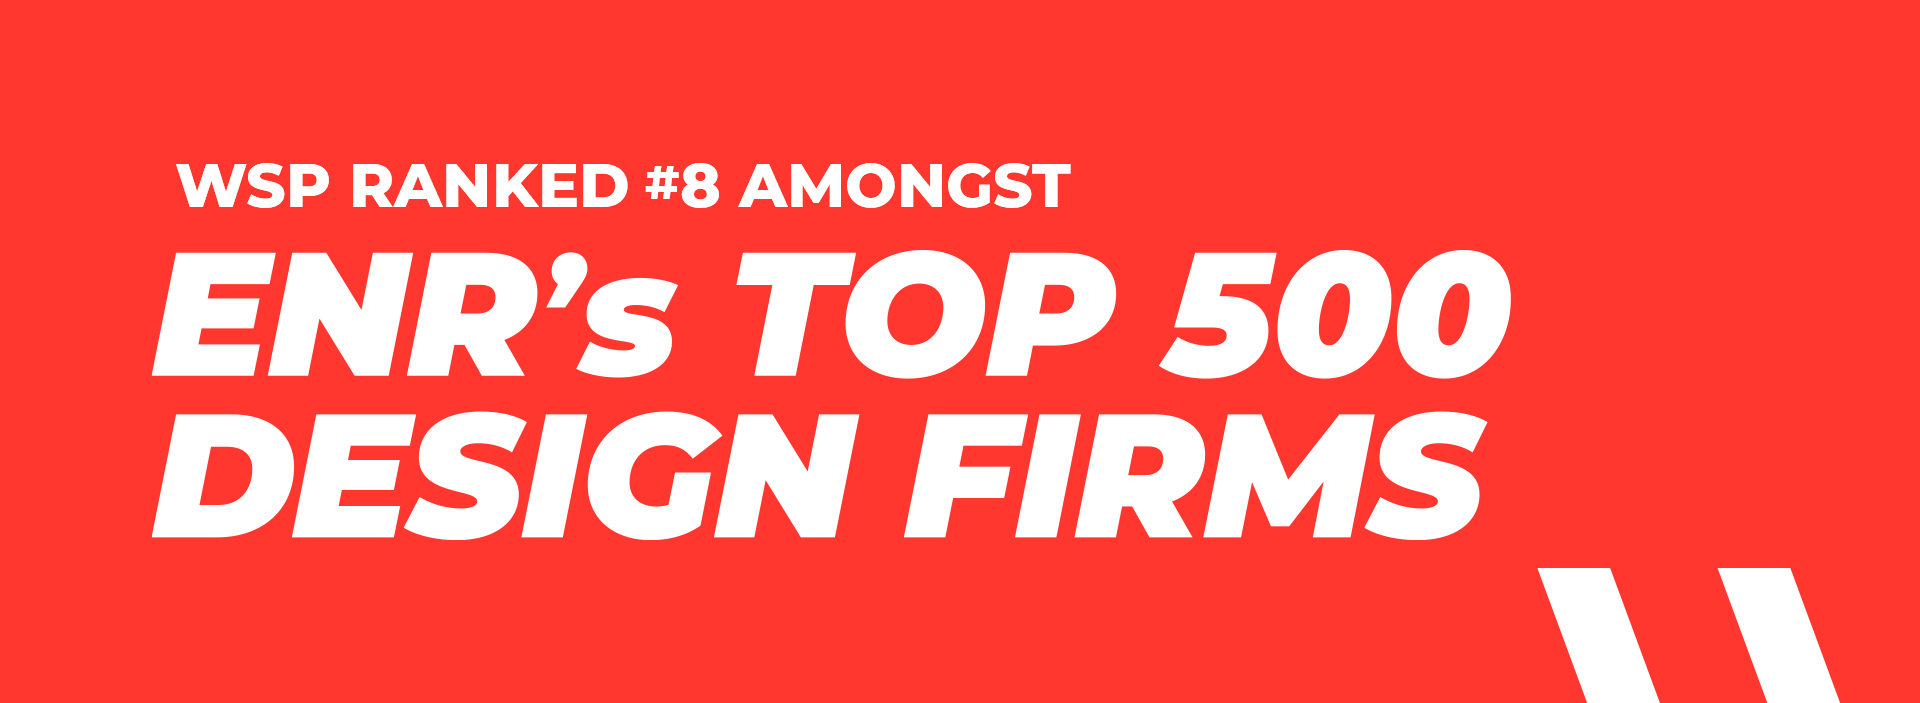 WSP ranked 8 amongst ENR Top 500 design firms